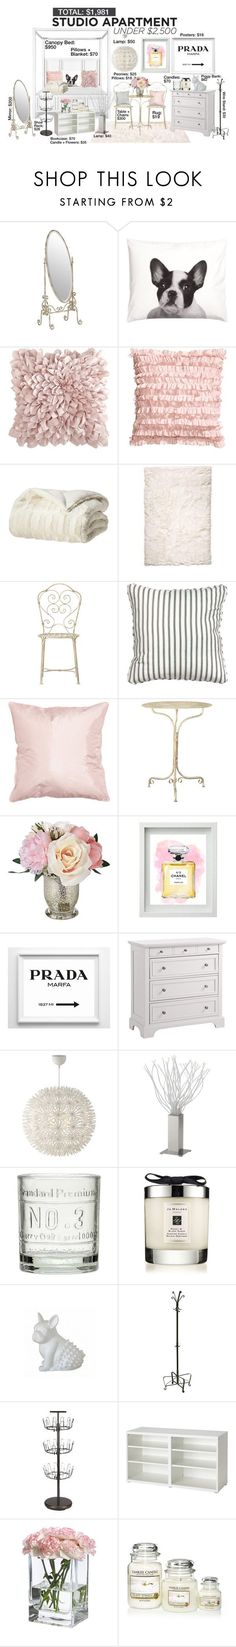 """""""Studio Apartment Under $2,500 - #4"""" by theleatherlook ❤ liked on Polyvore featuring interior, interiors, interior design, home, home decor, interior decorating, H&M, Pier 1 Imports, Home Decorators Collection and Chanel"""